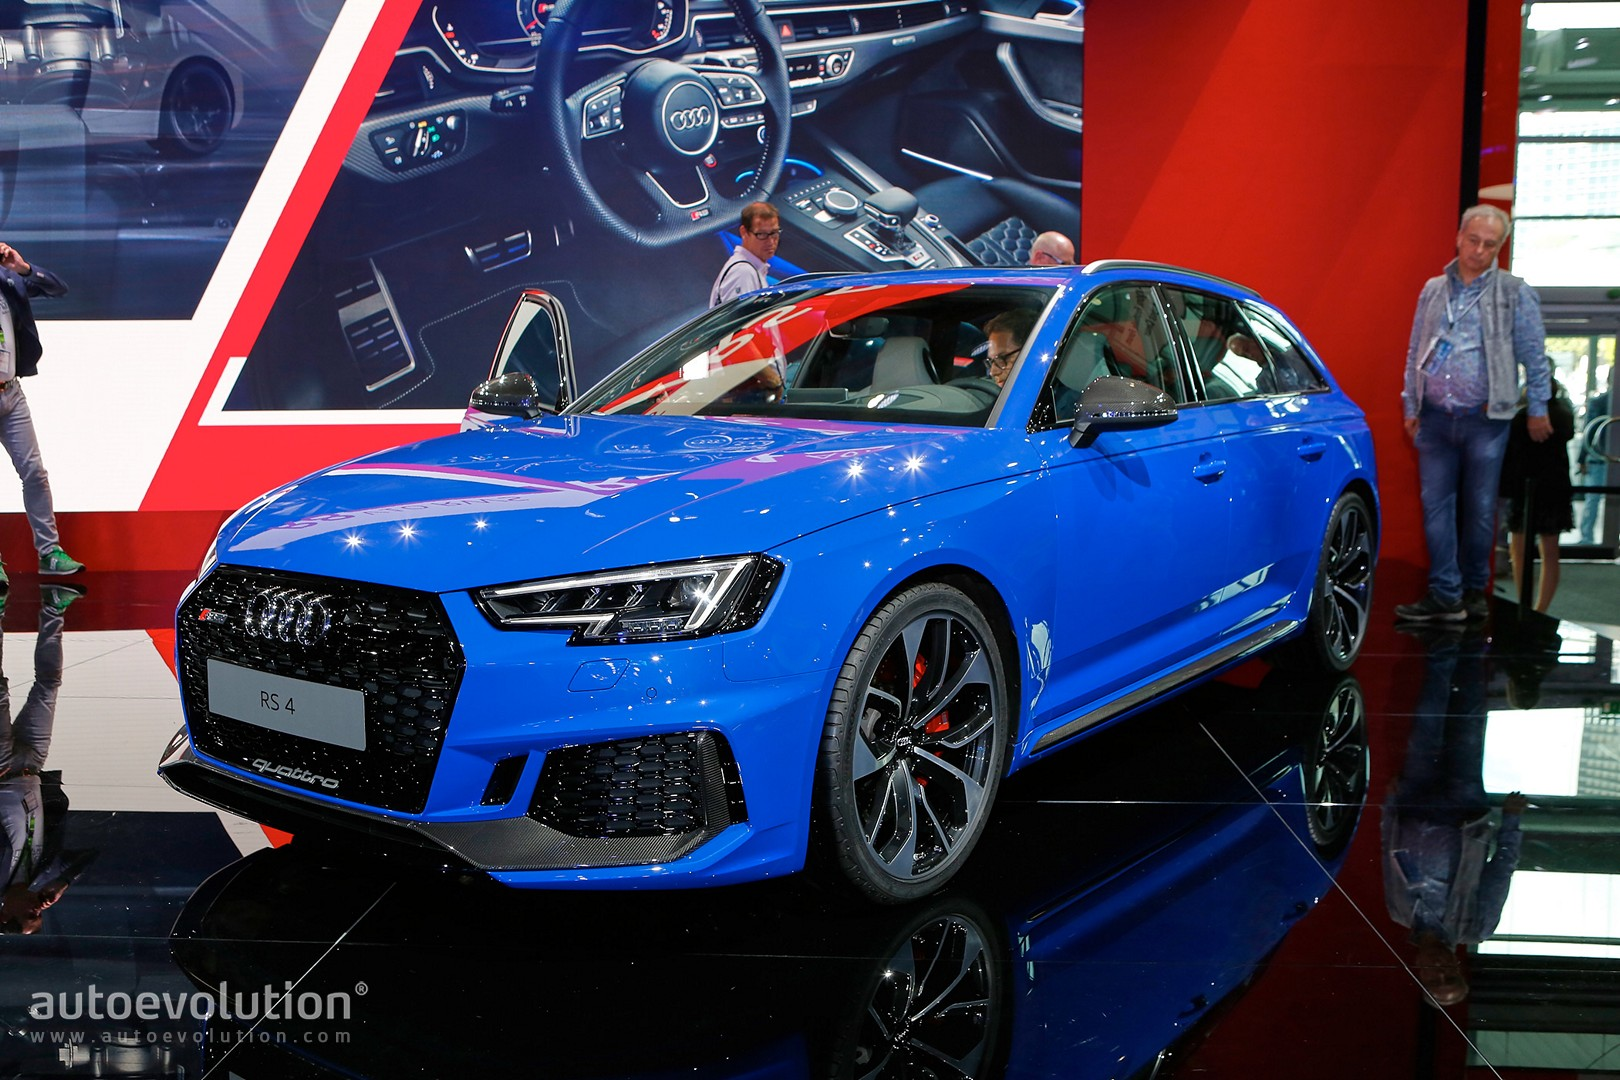 The New 450 HP Audi RS4 Avant Does 0-100 KM/H in 4.1 Seconds ...